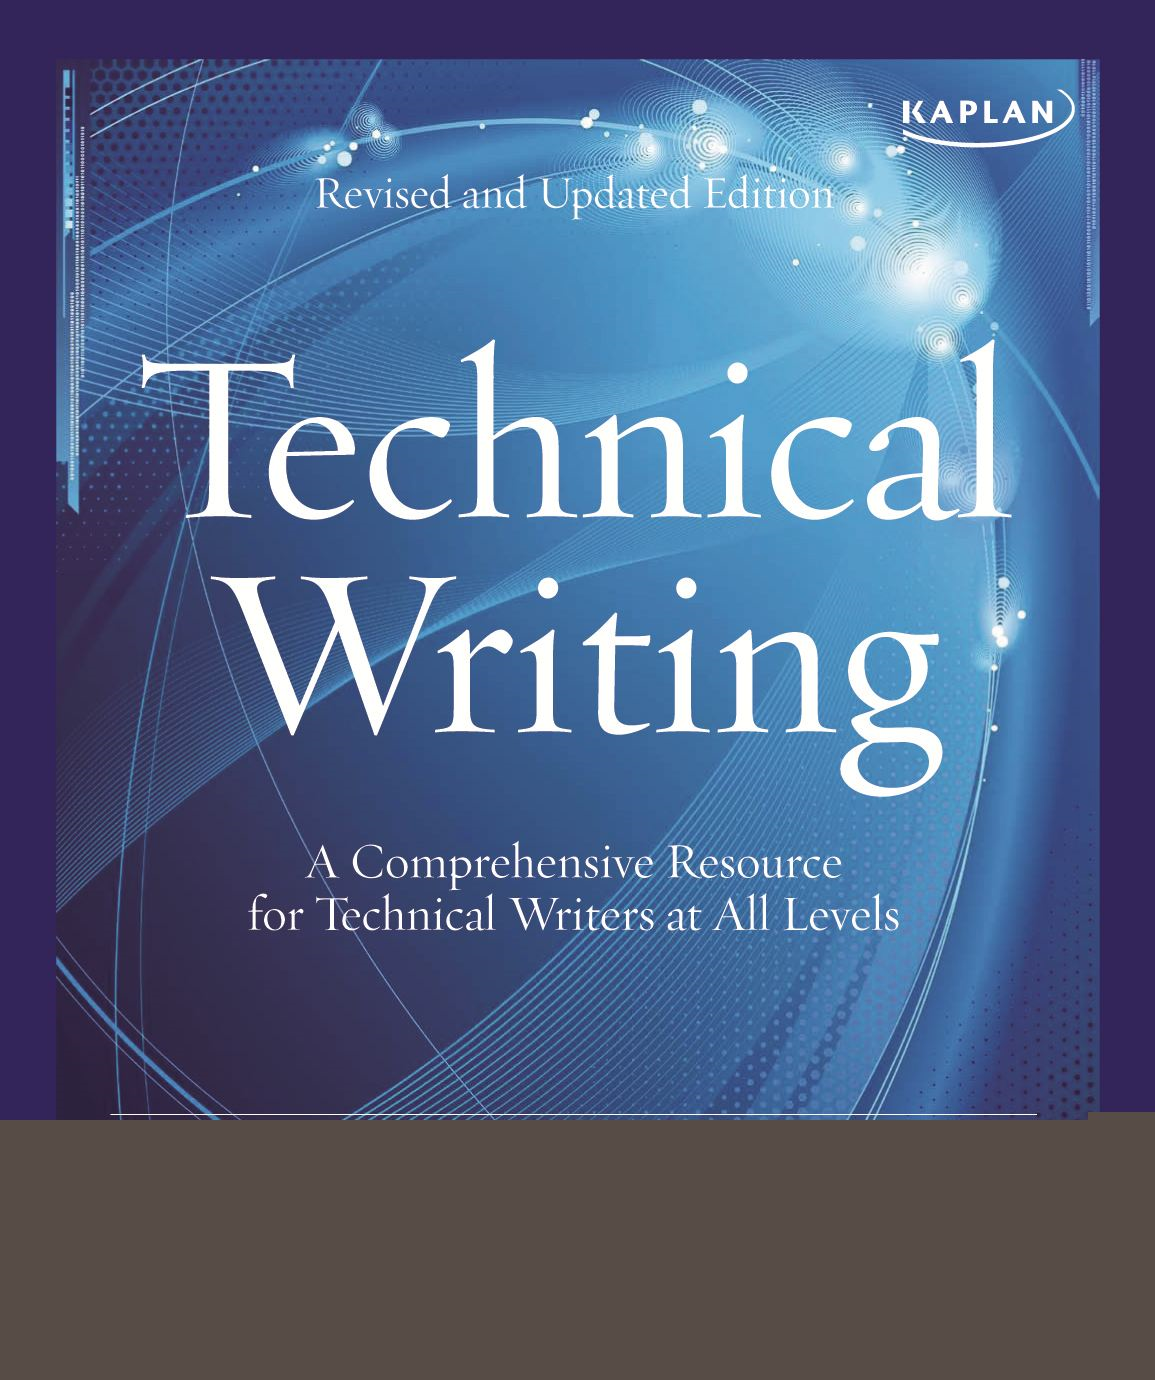 Kaplan Technical Writing